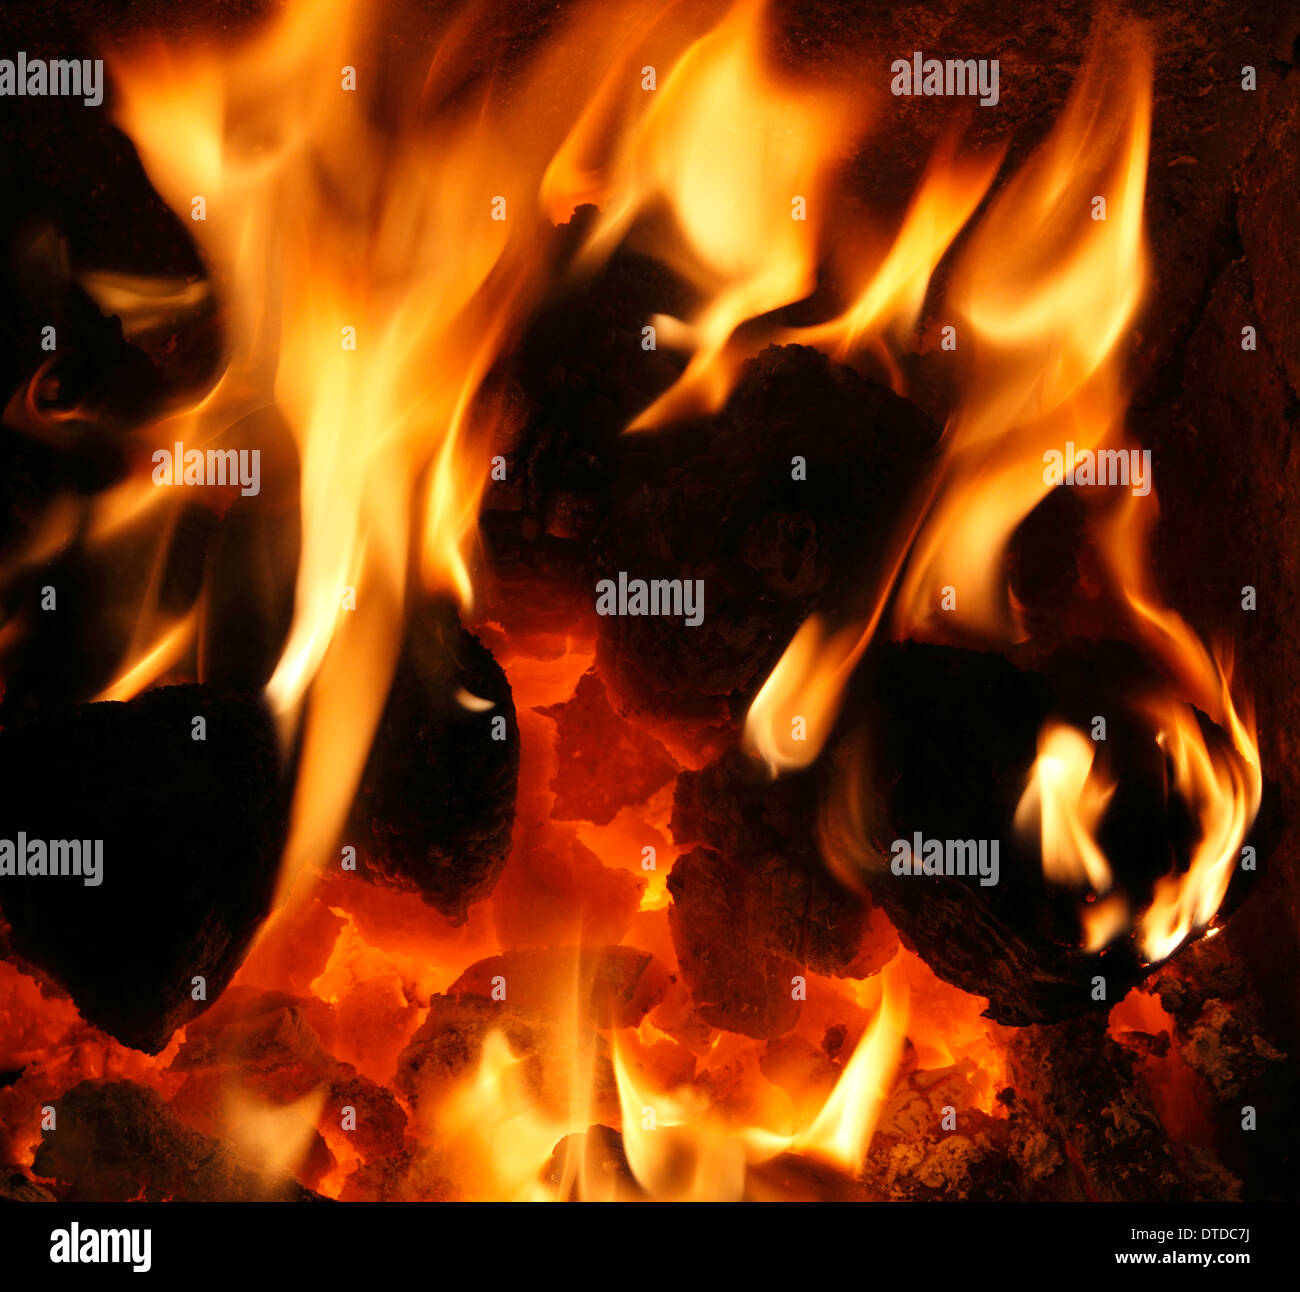 Solid Fuel, domestic coal Fire, burning, flame, flames heart fireside heat energy power fires warmth warm home fires - Stock Image